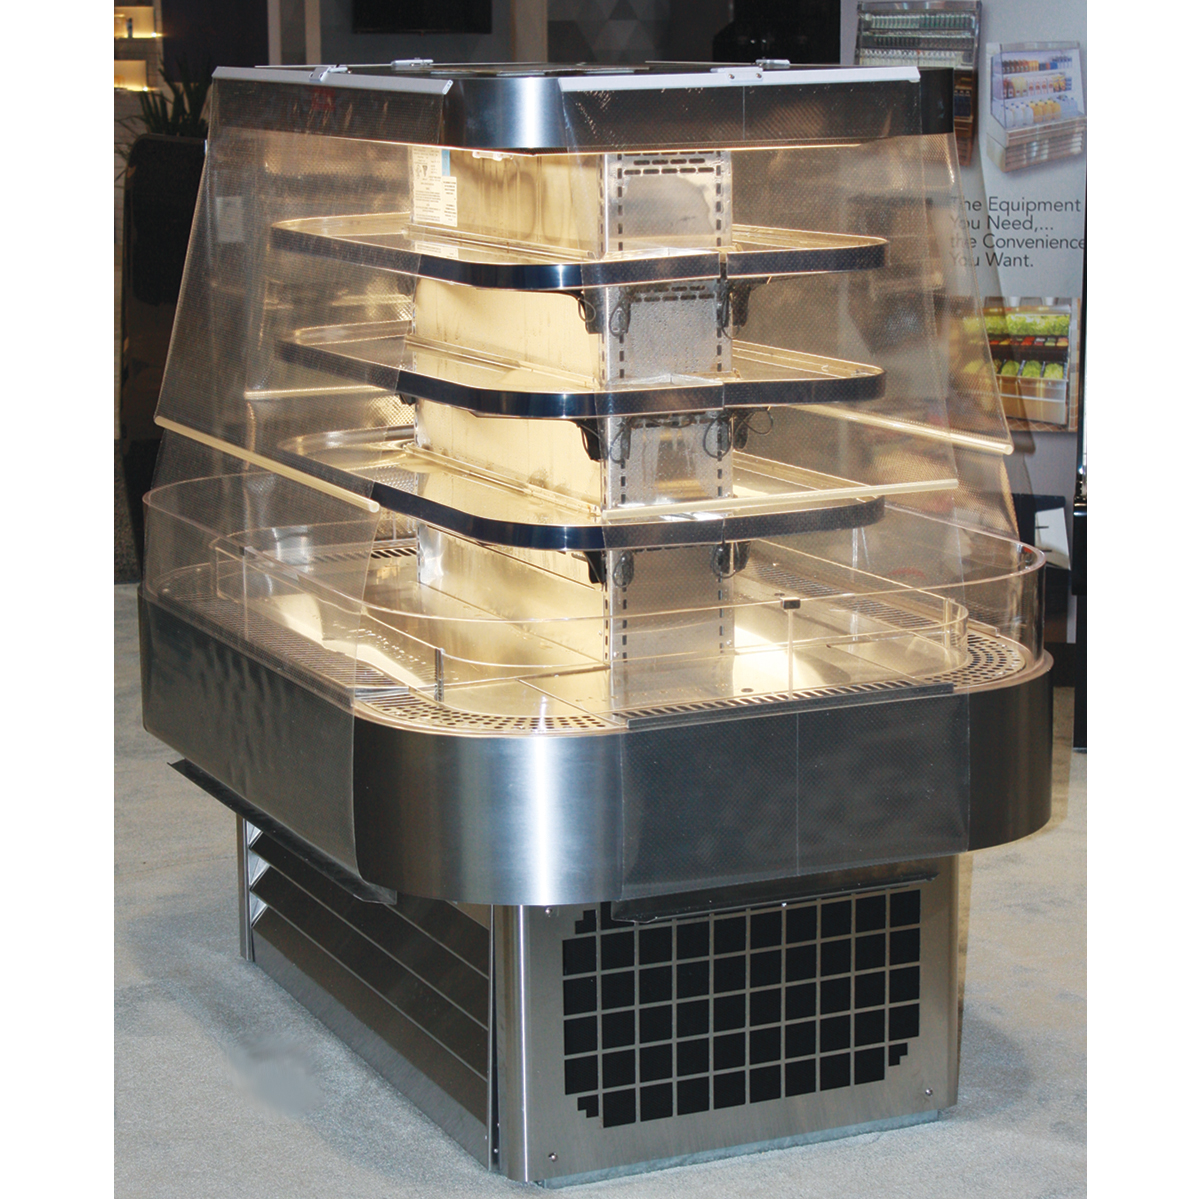 Howard-McCray SC-OD42I-5-B-LED merchandiser, open refrigerated display